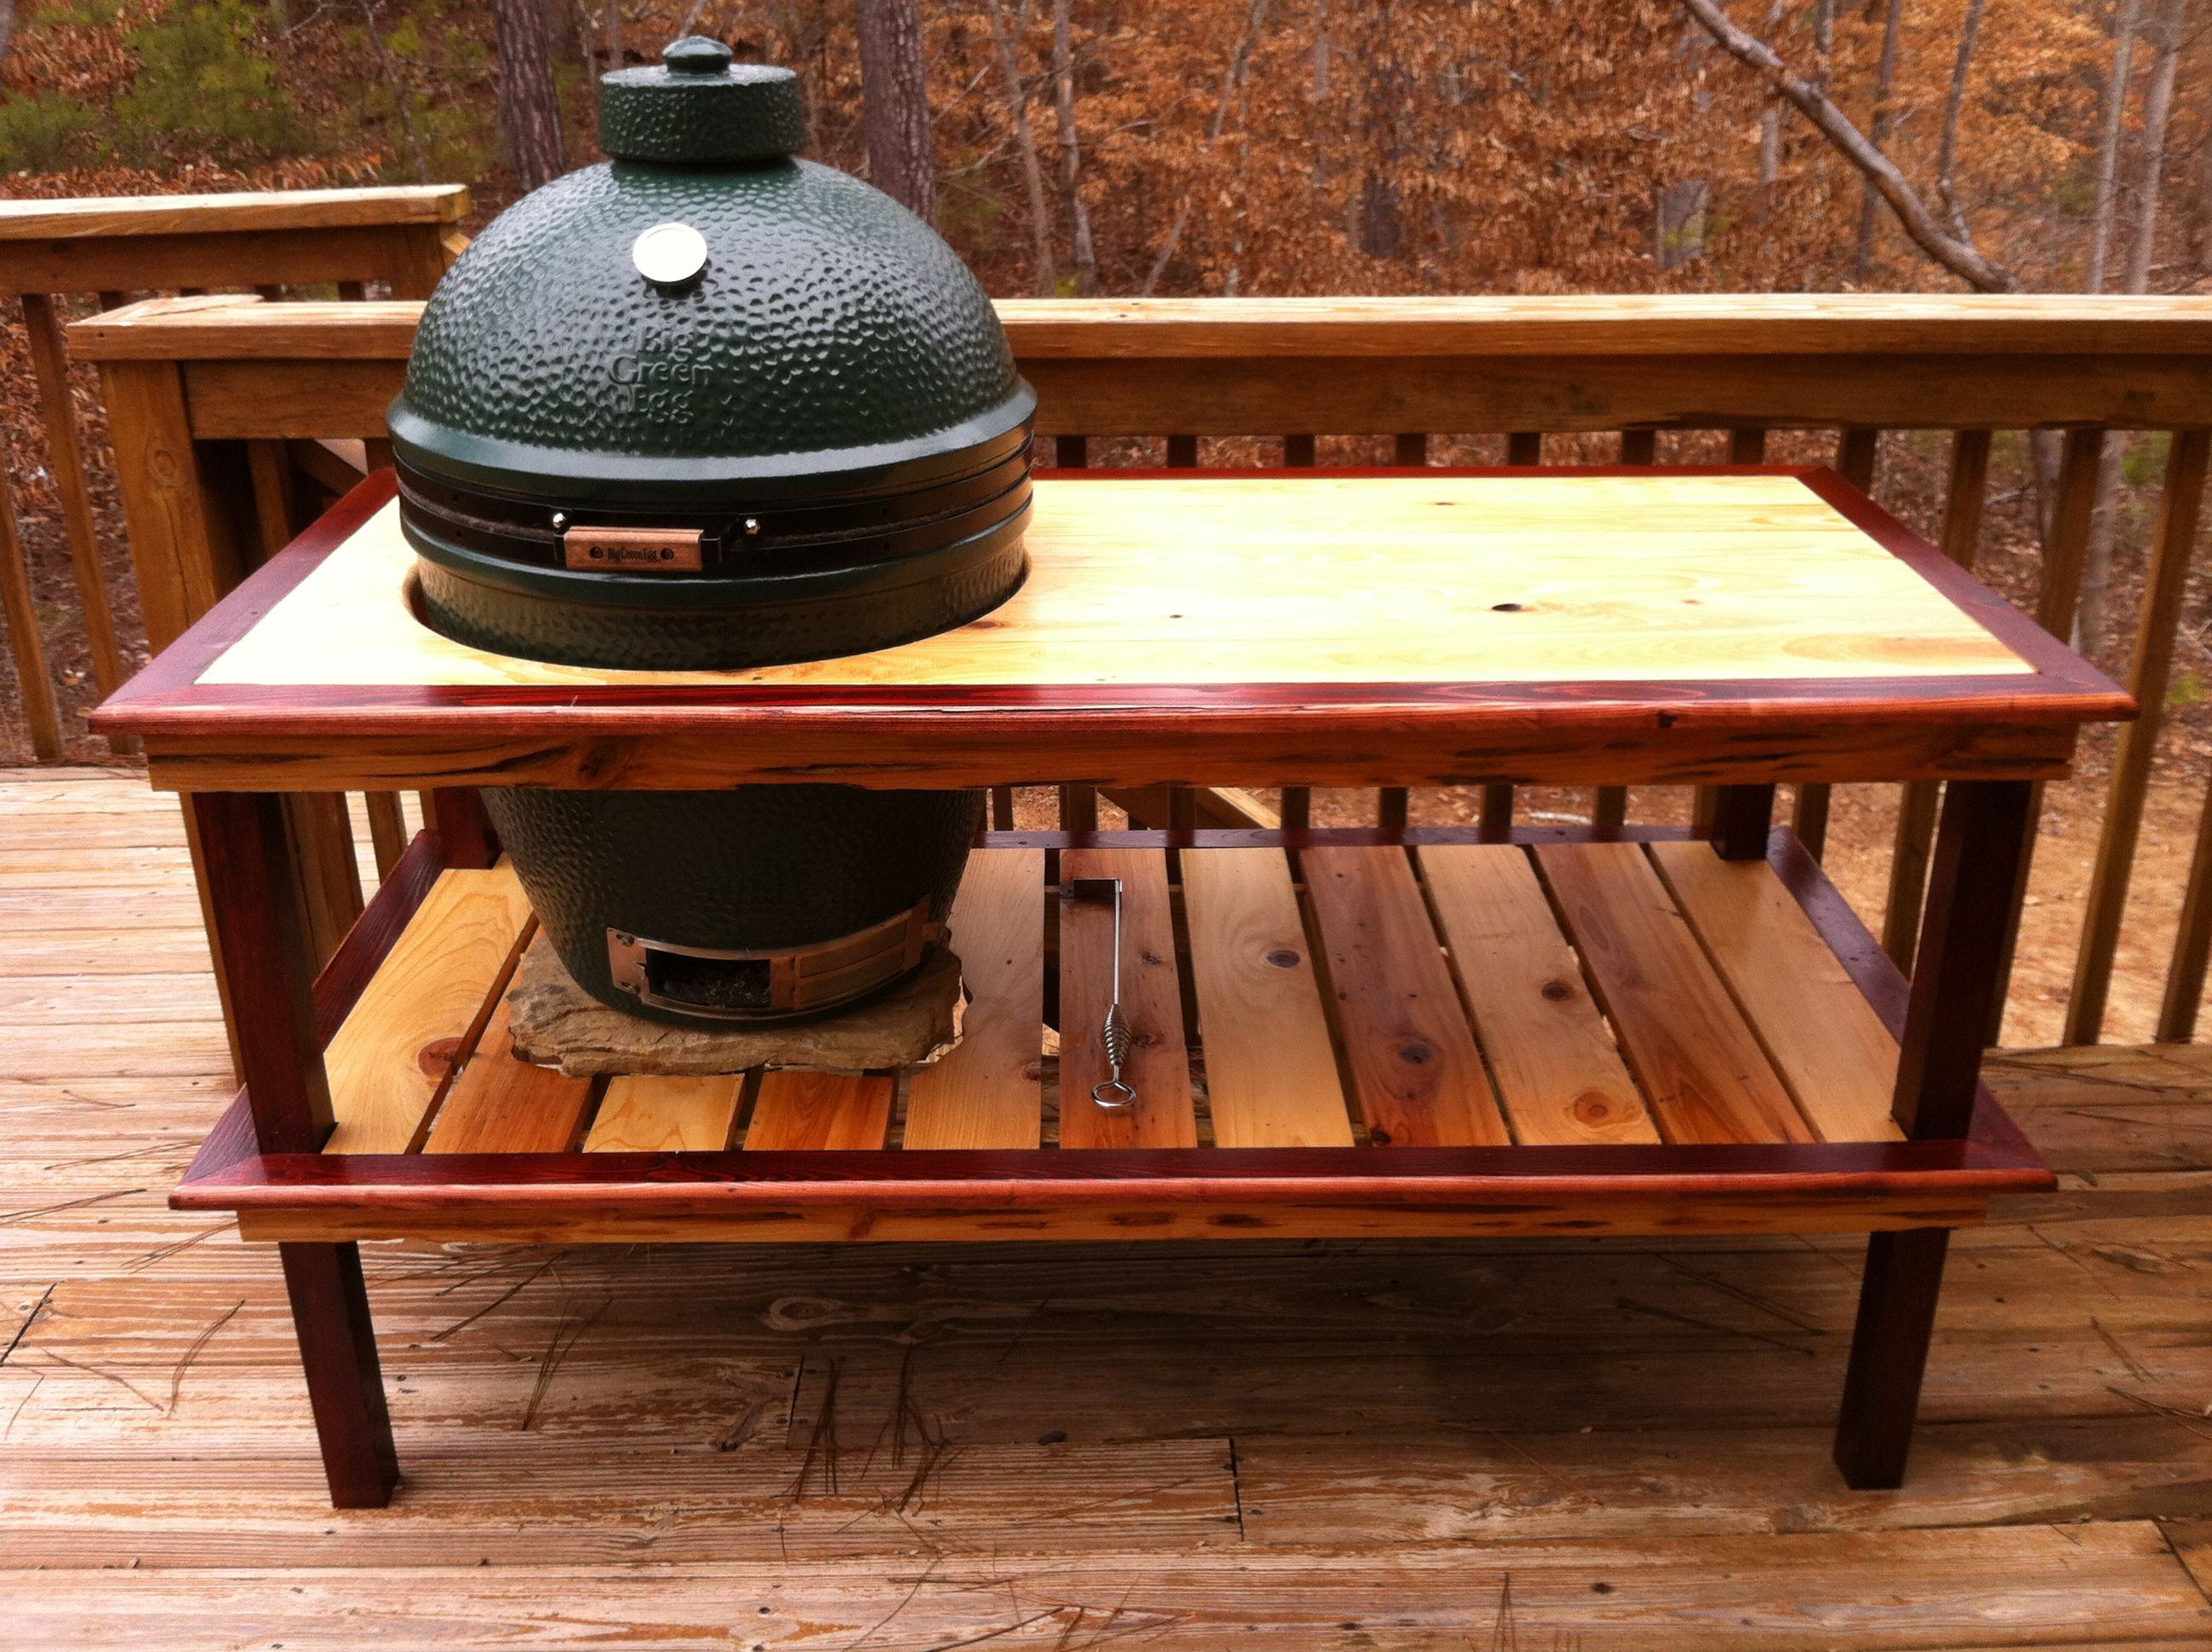 Wood Work Table Plans For Xl Big Green Egg PDF Plans